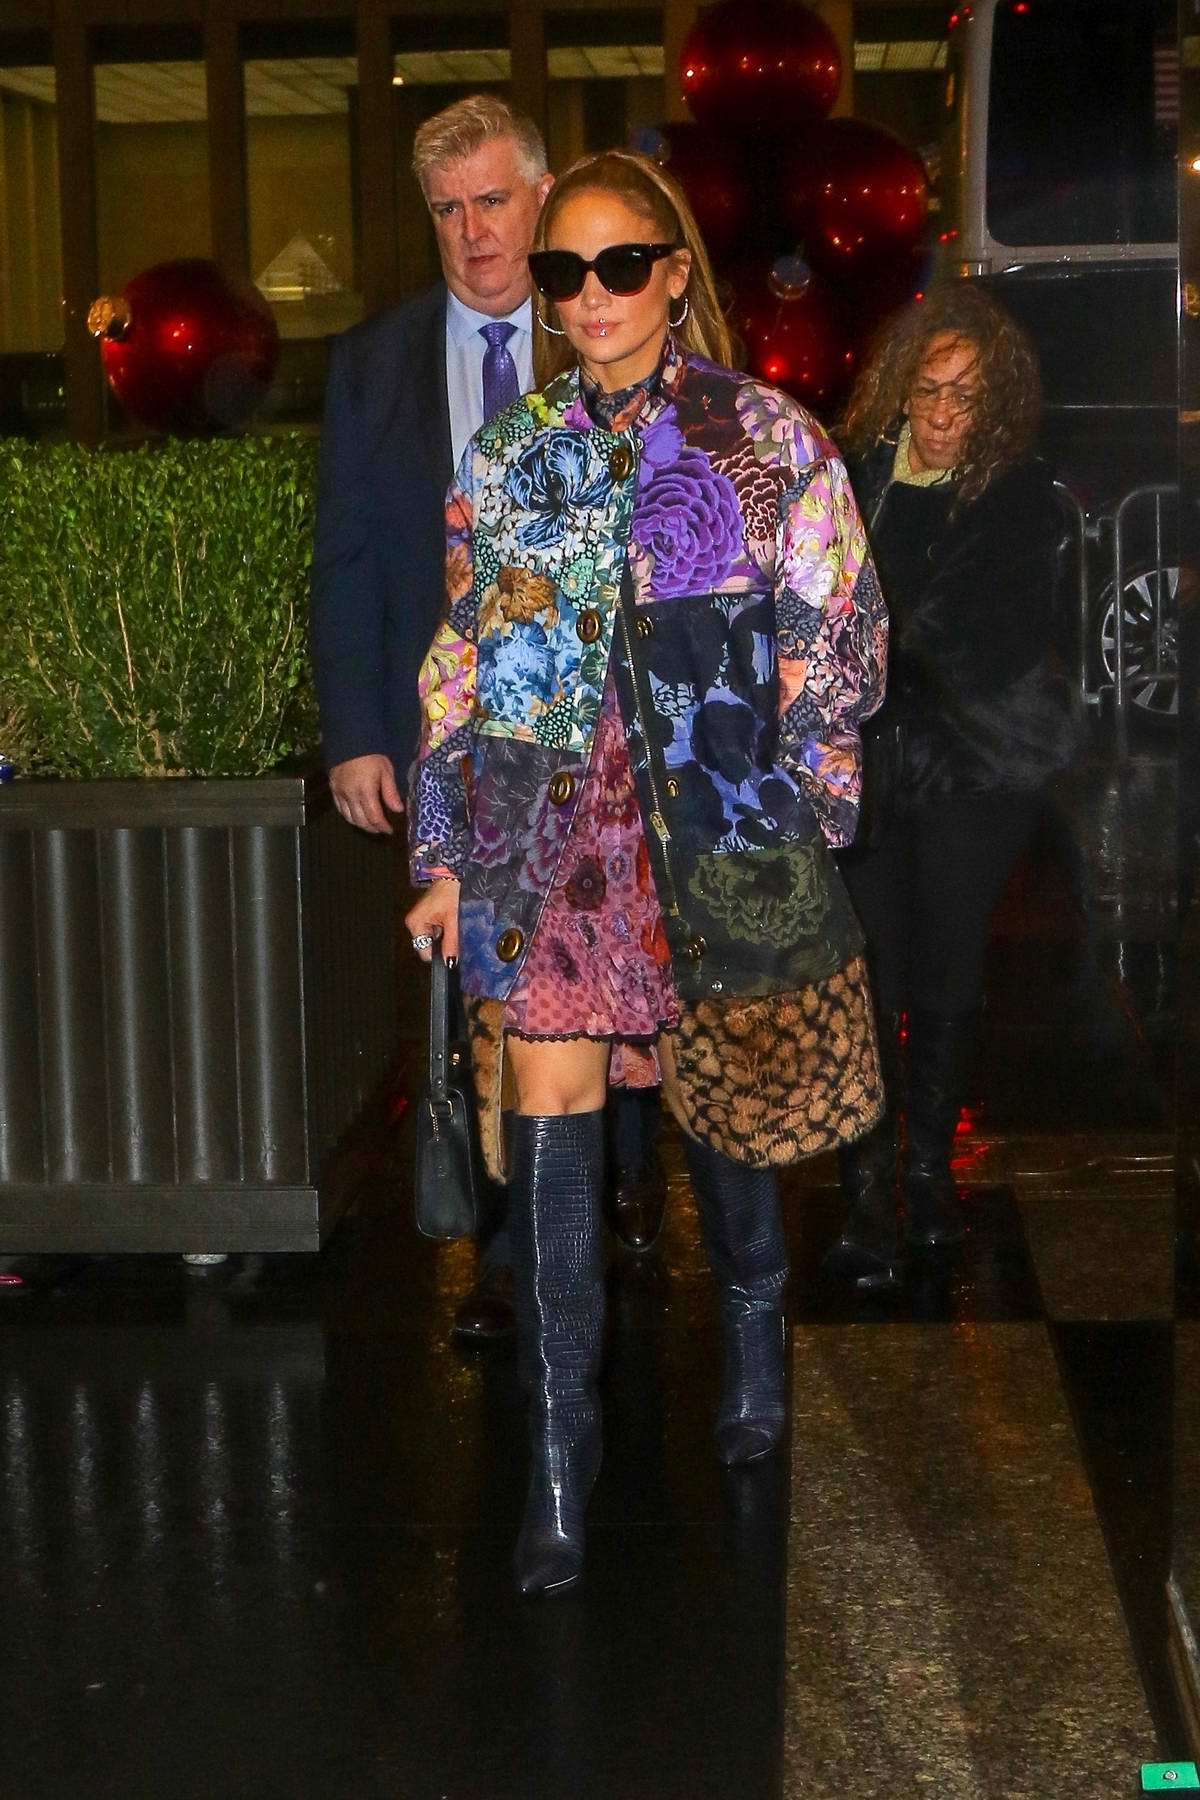 Jennifer Lopez arrives for an appearance at 'The Tonight Show Starring Jimmy Fallon' at NBS Studios in New York City